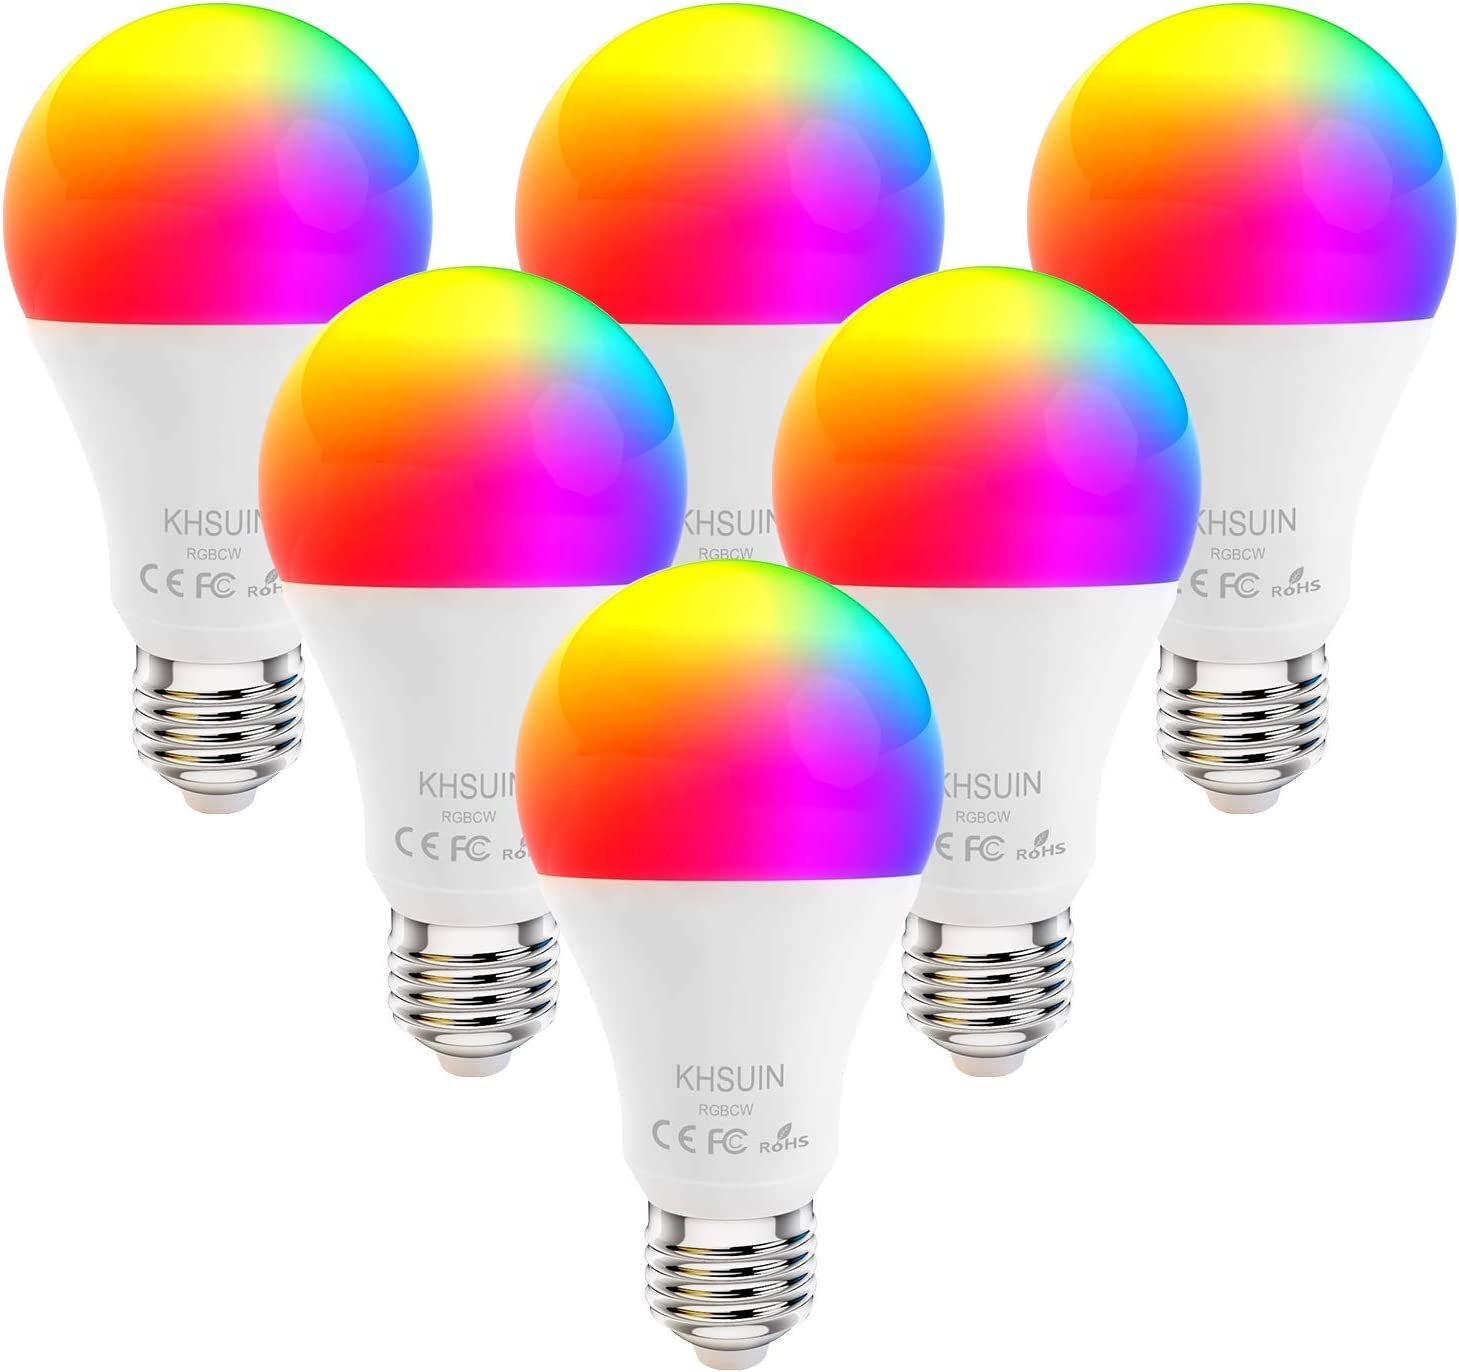 Smart Bulbs, 6 Pack 7W Led Alexa Light Bulbs with RGB Color Changing,2.4G WiFi Bulbs A19 E26 Base,No Hub Required,Smart Light Bulb Works with Alexa and Google Home